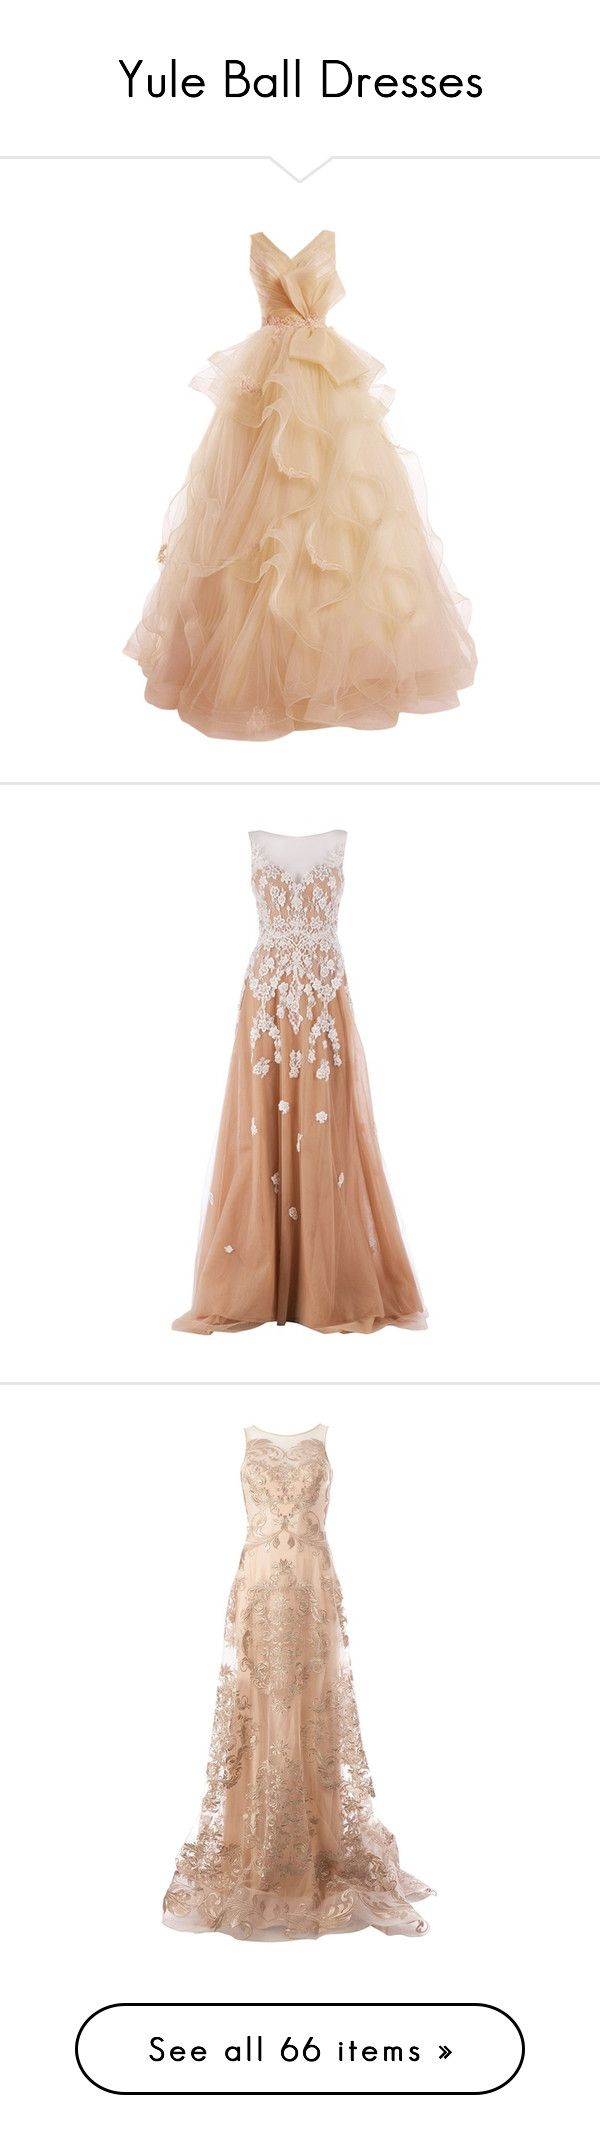 """Yule Ball Dresses"" by shamrocker17 on Polyvore featuring dresses, gowns, vestidos, long dresses, lace gown, long evening dresses, prom ball gowns, evening gowns, long beige dress and zuhair murad gowns"